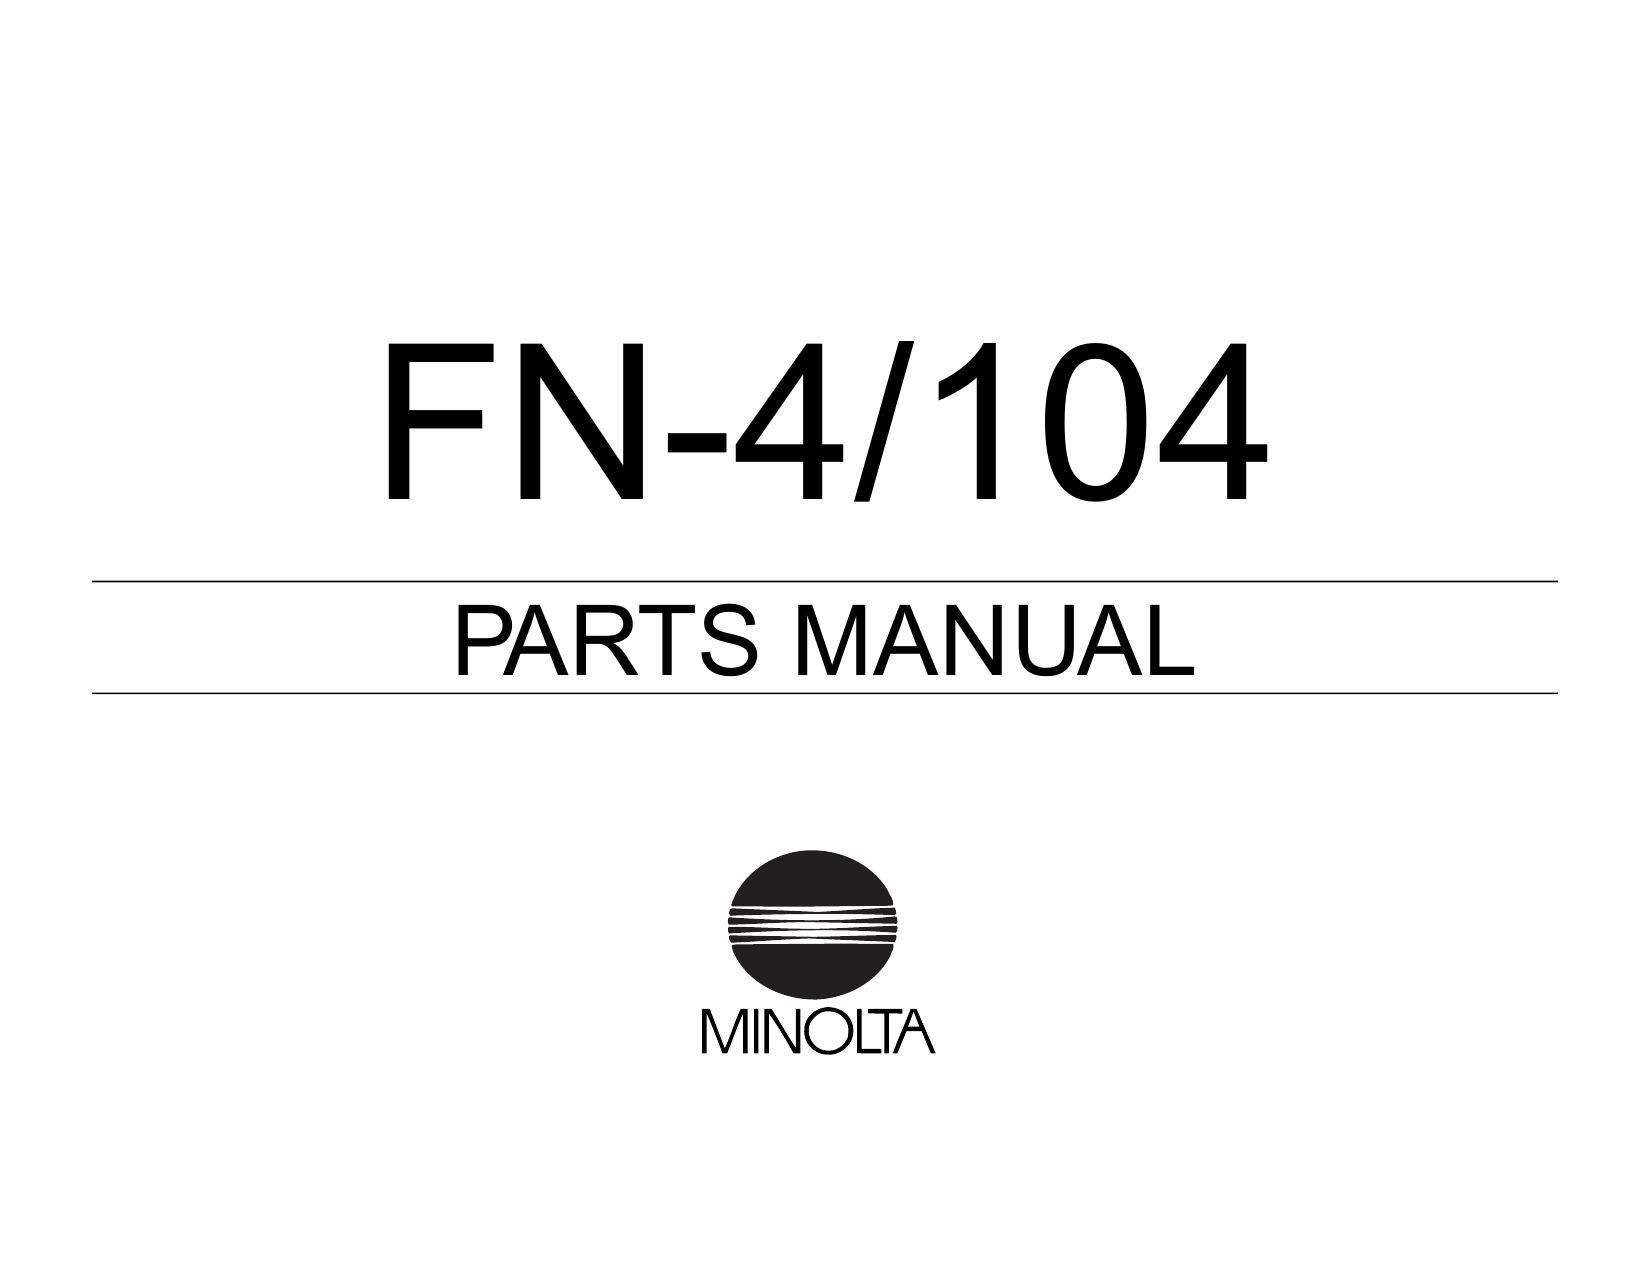 Konica-Minolta Options FN-4 104 Parts Manual-1